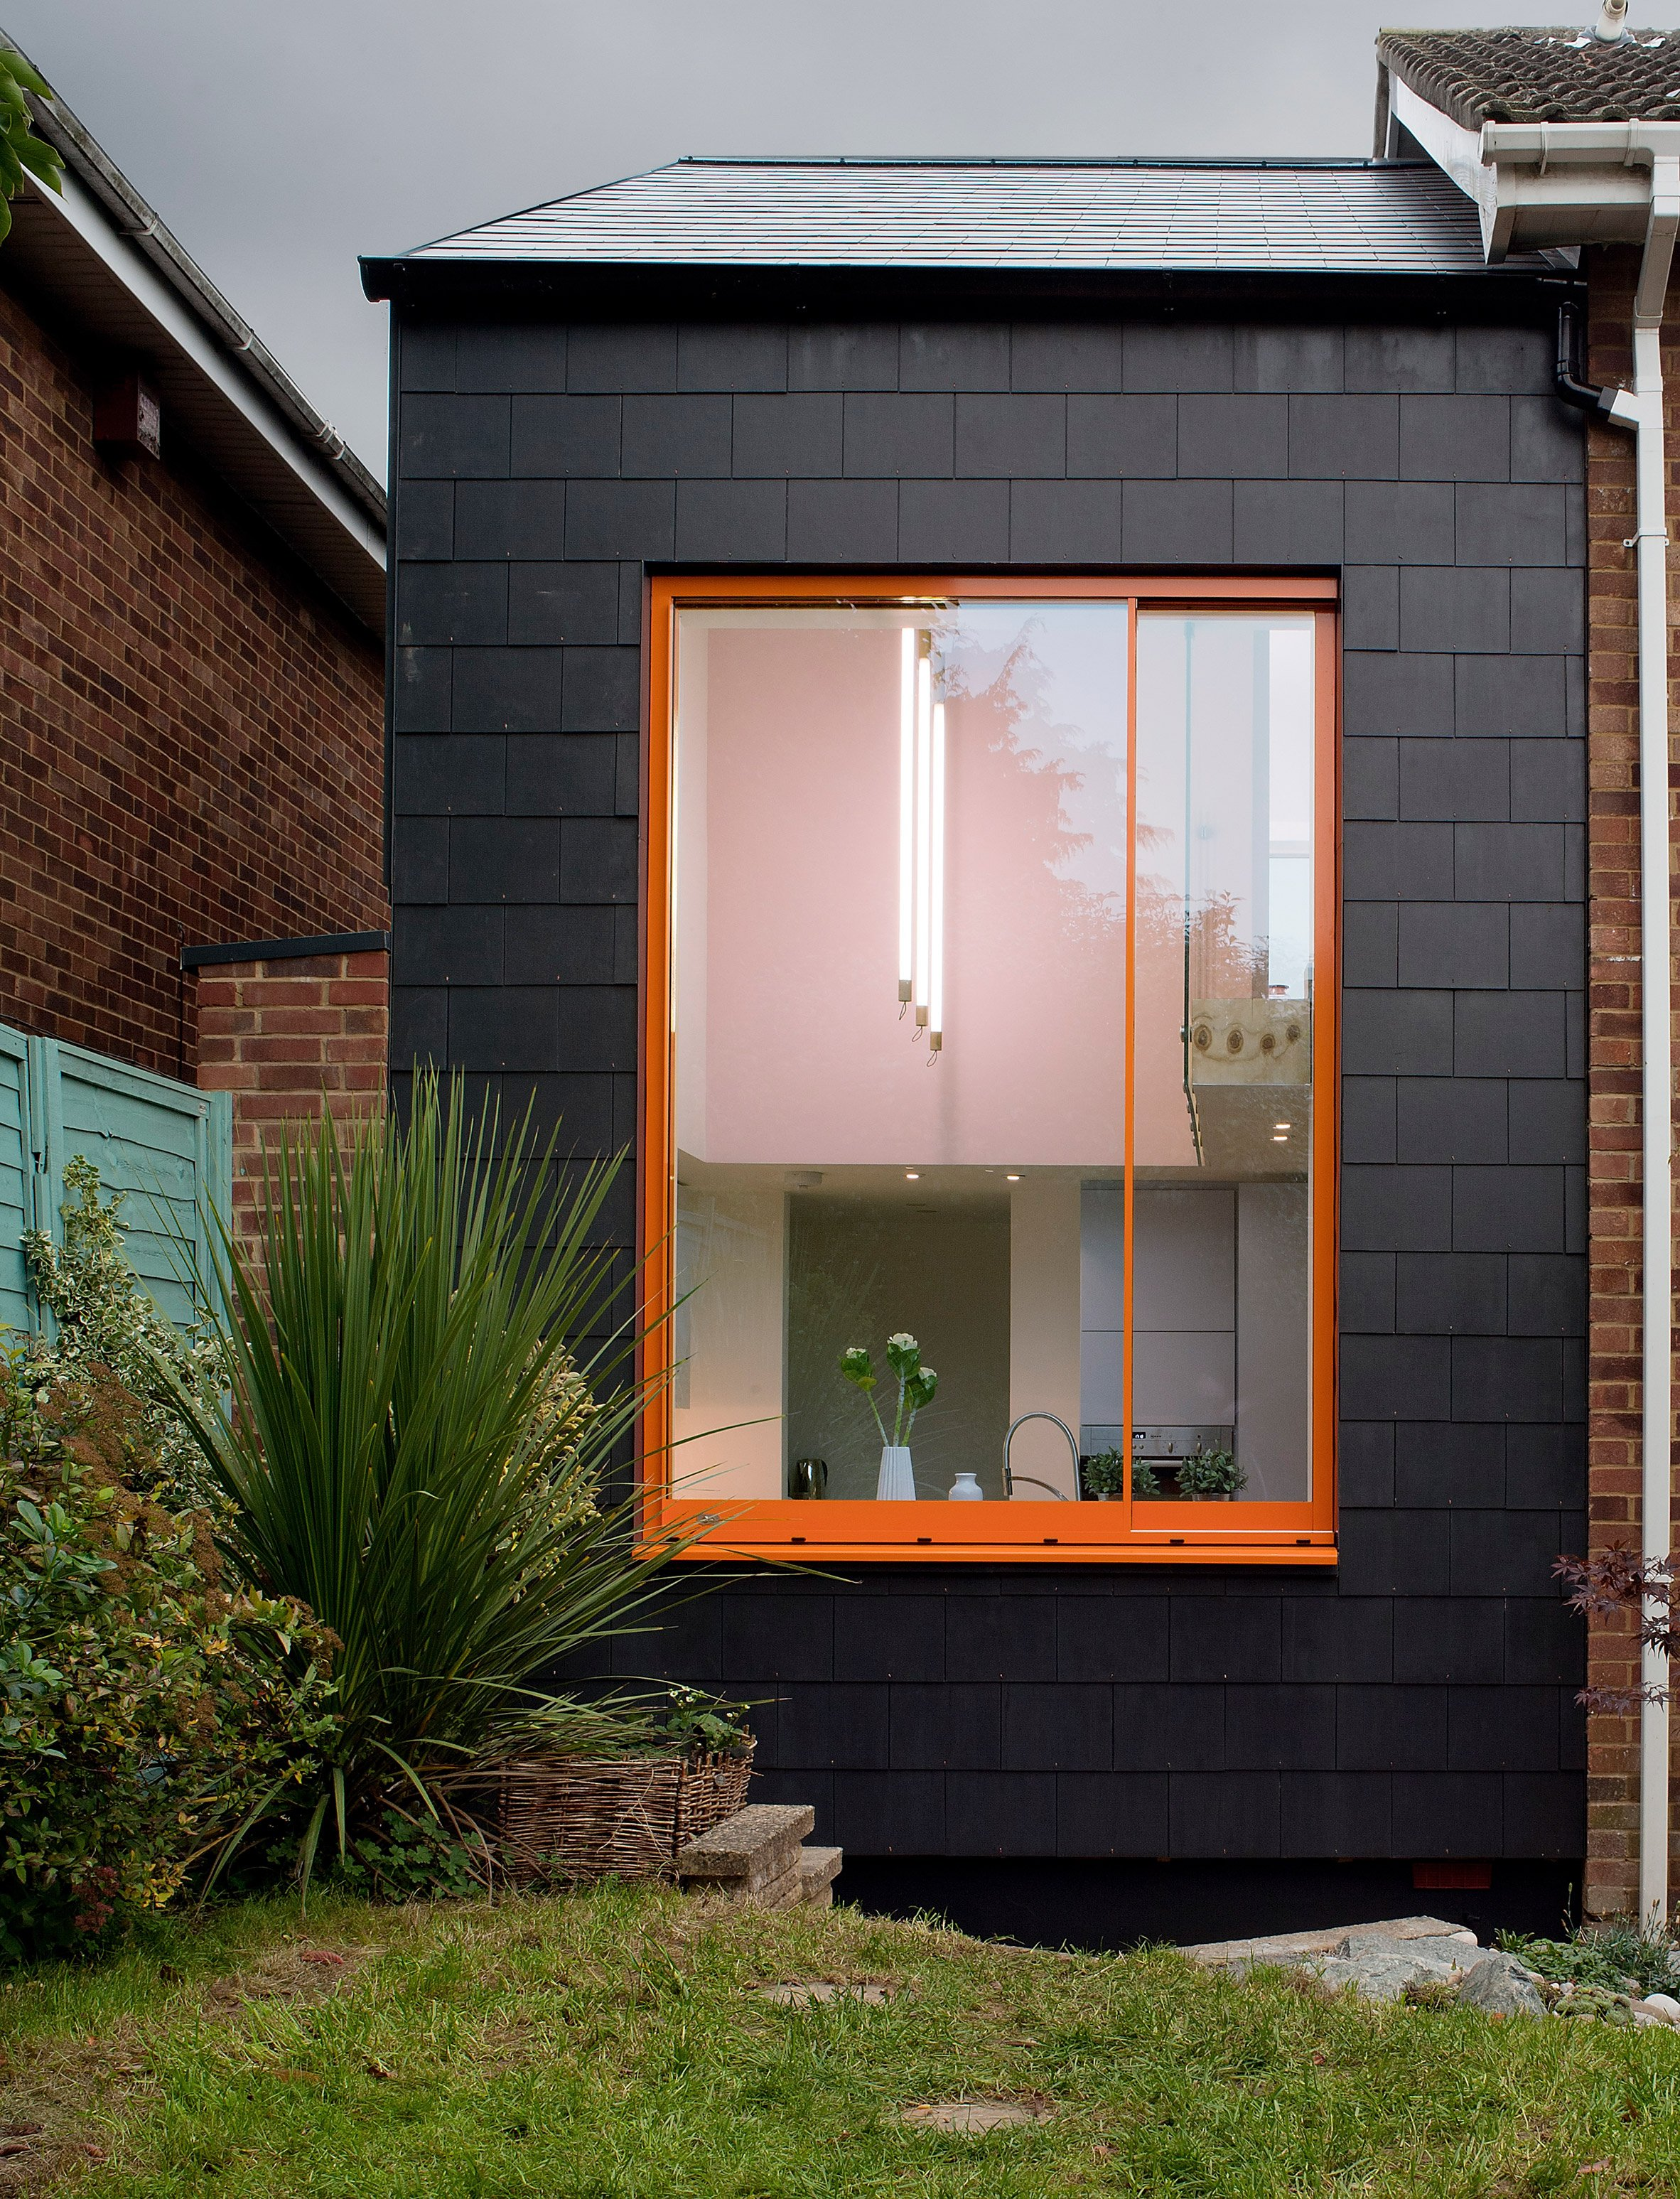 Lipton Plant's Ugly House is a 1970s property with a black and orange extension